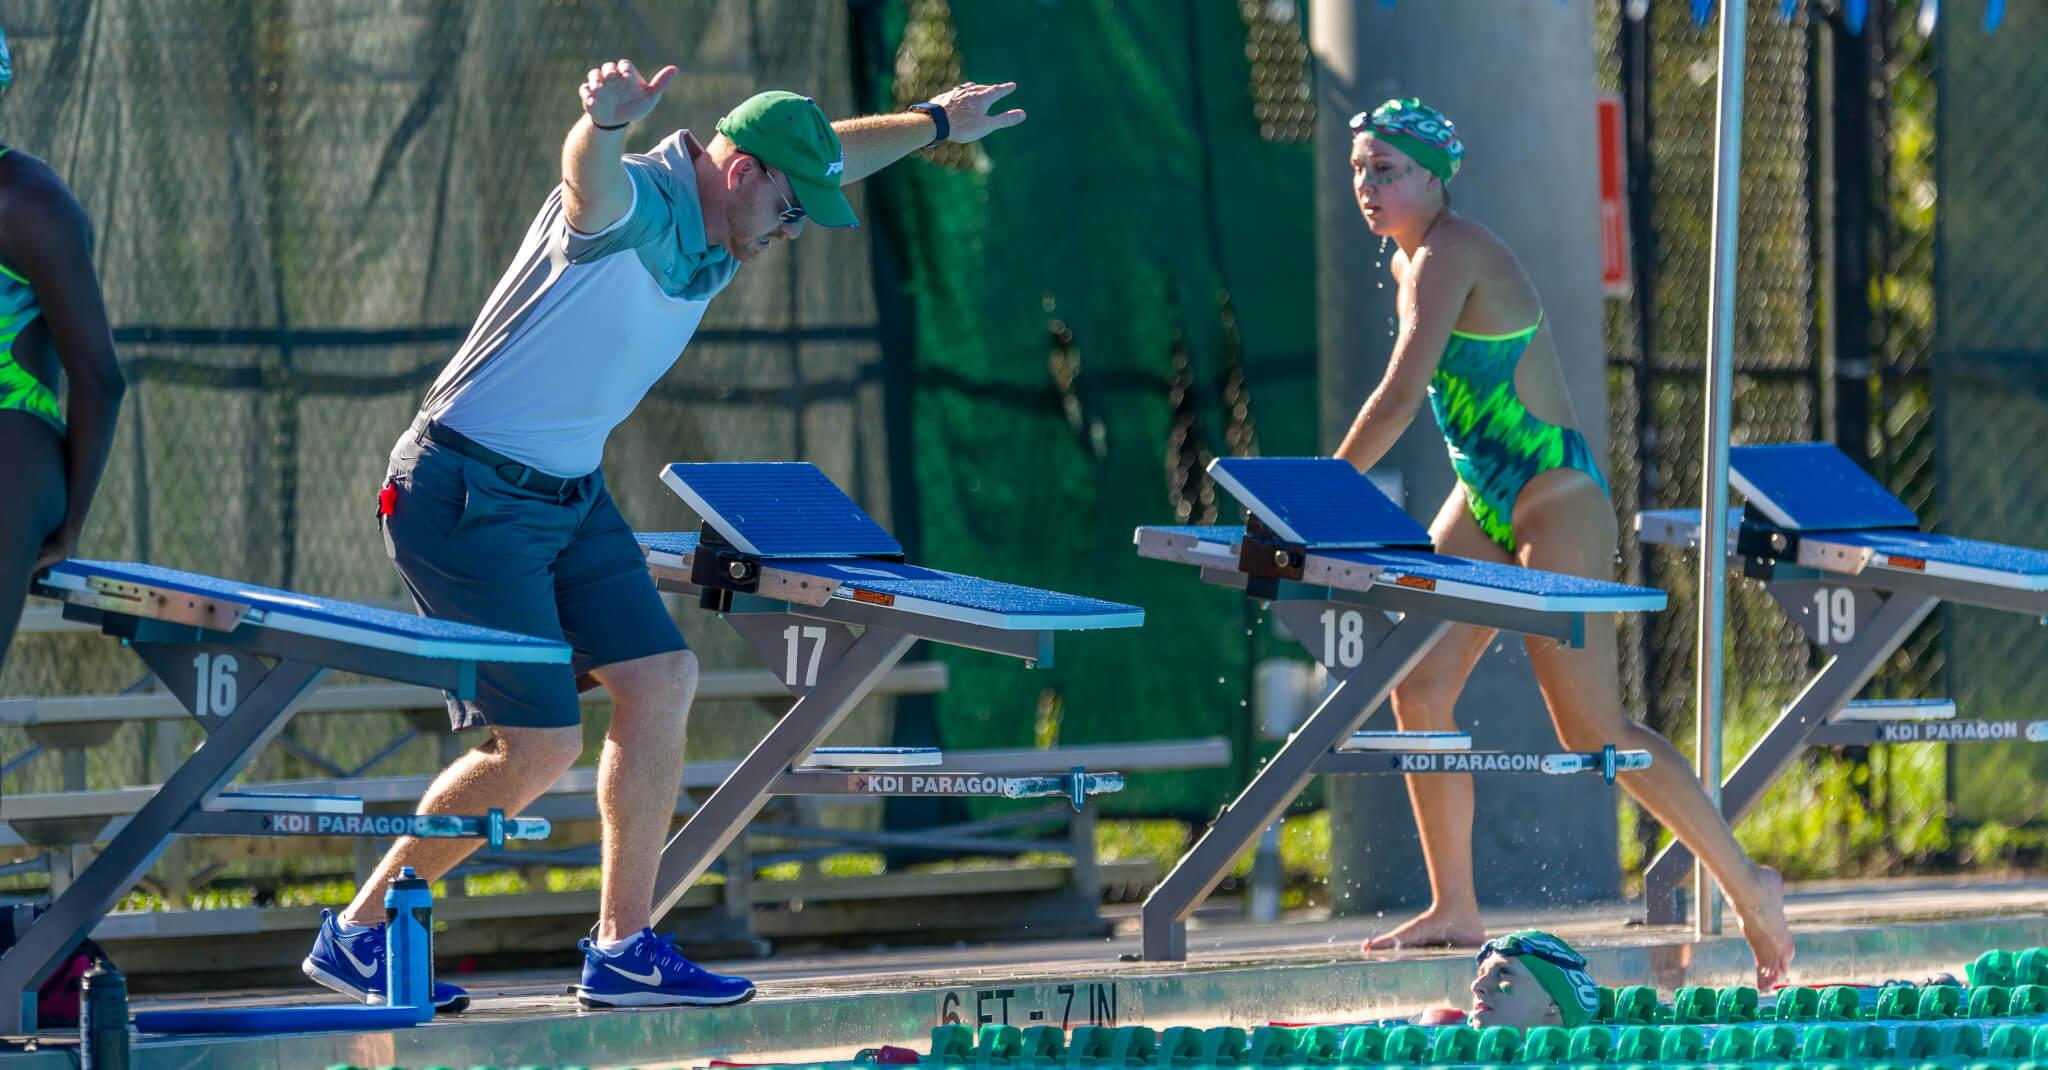 FGCU swimming and diving takes on first season under Dave Rollins